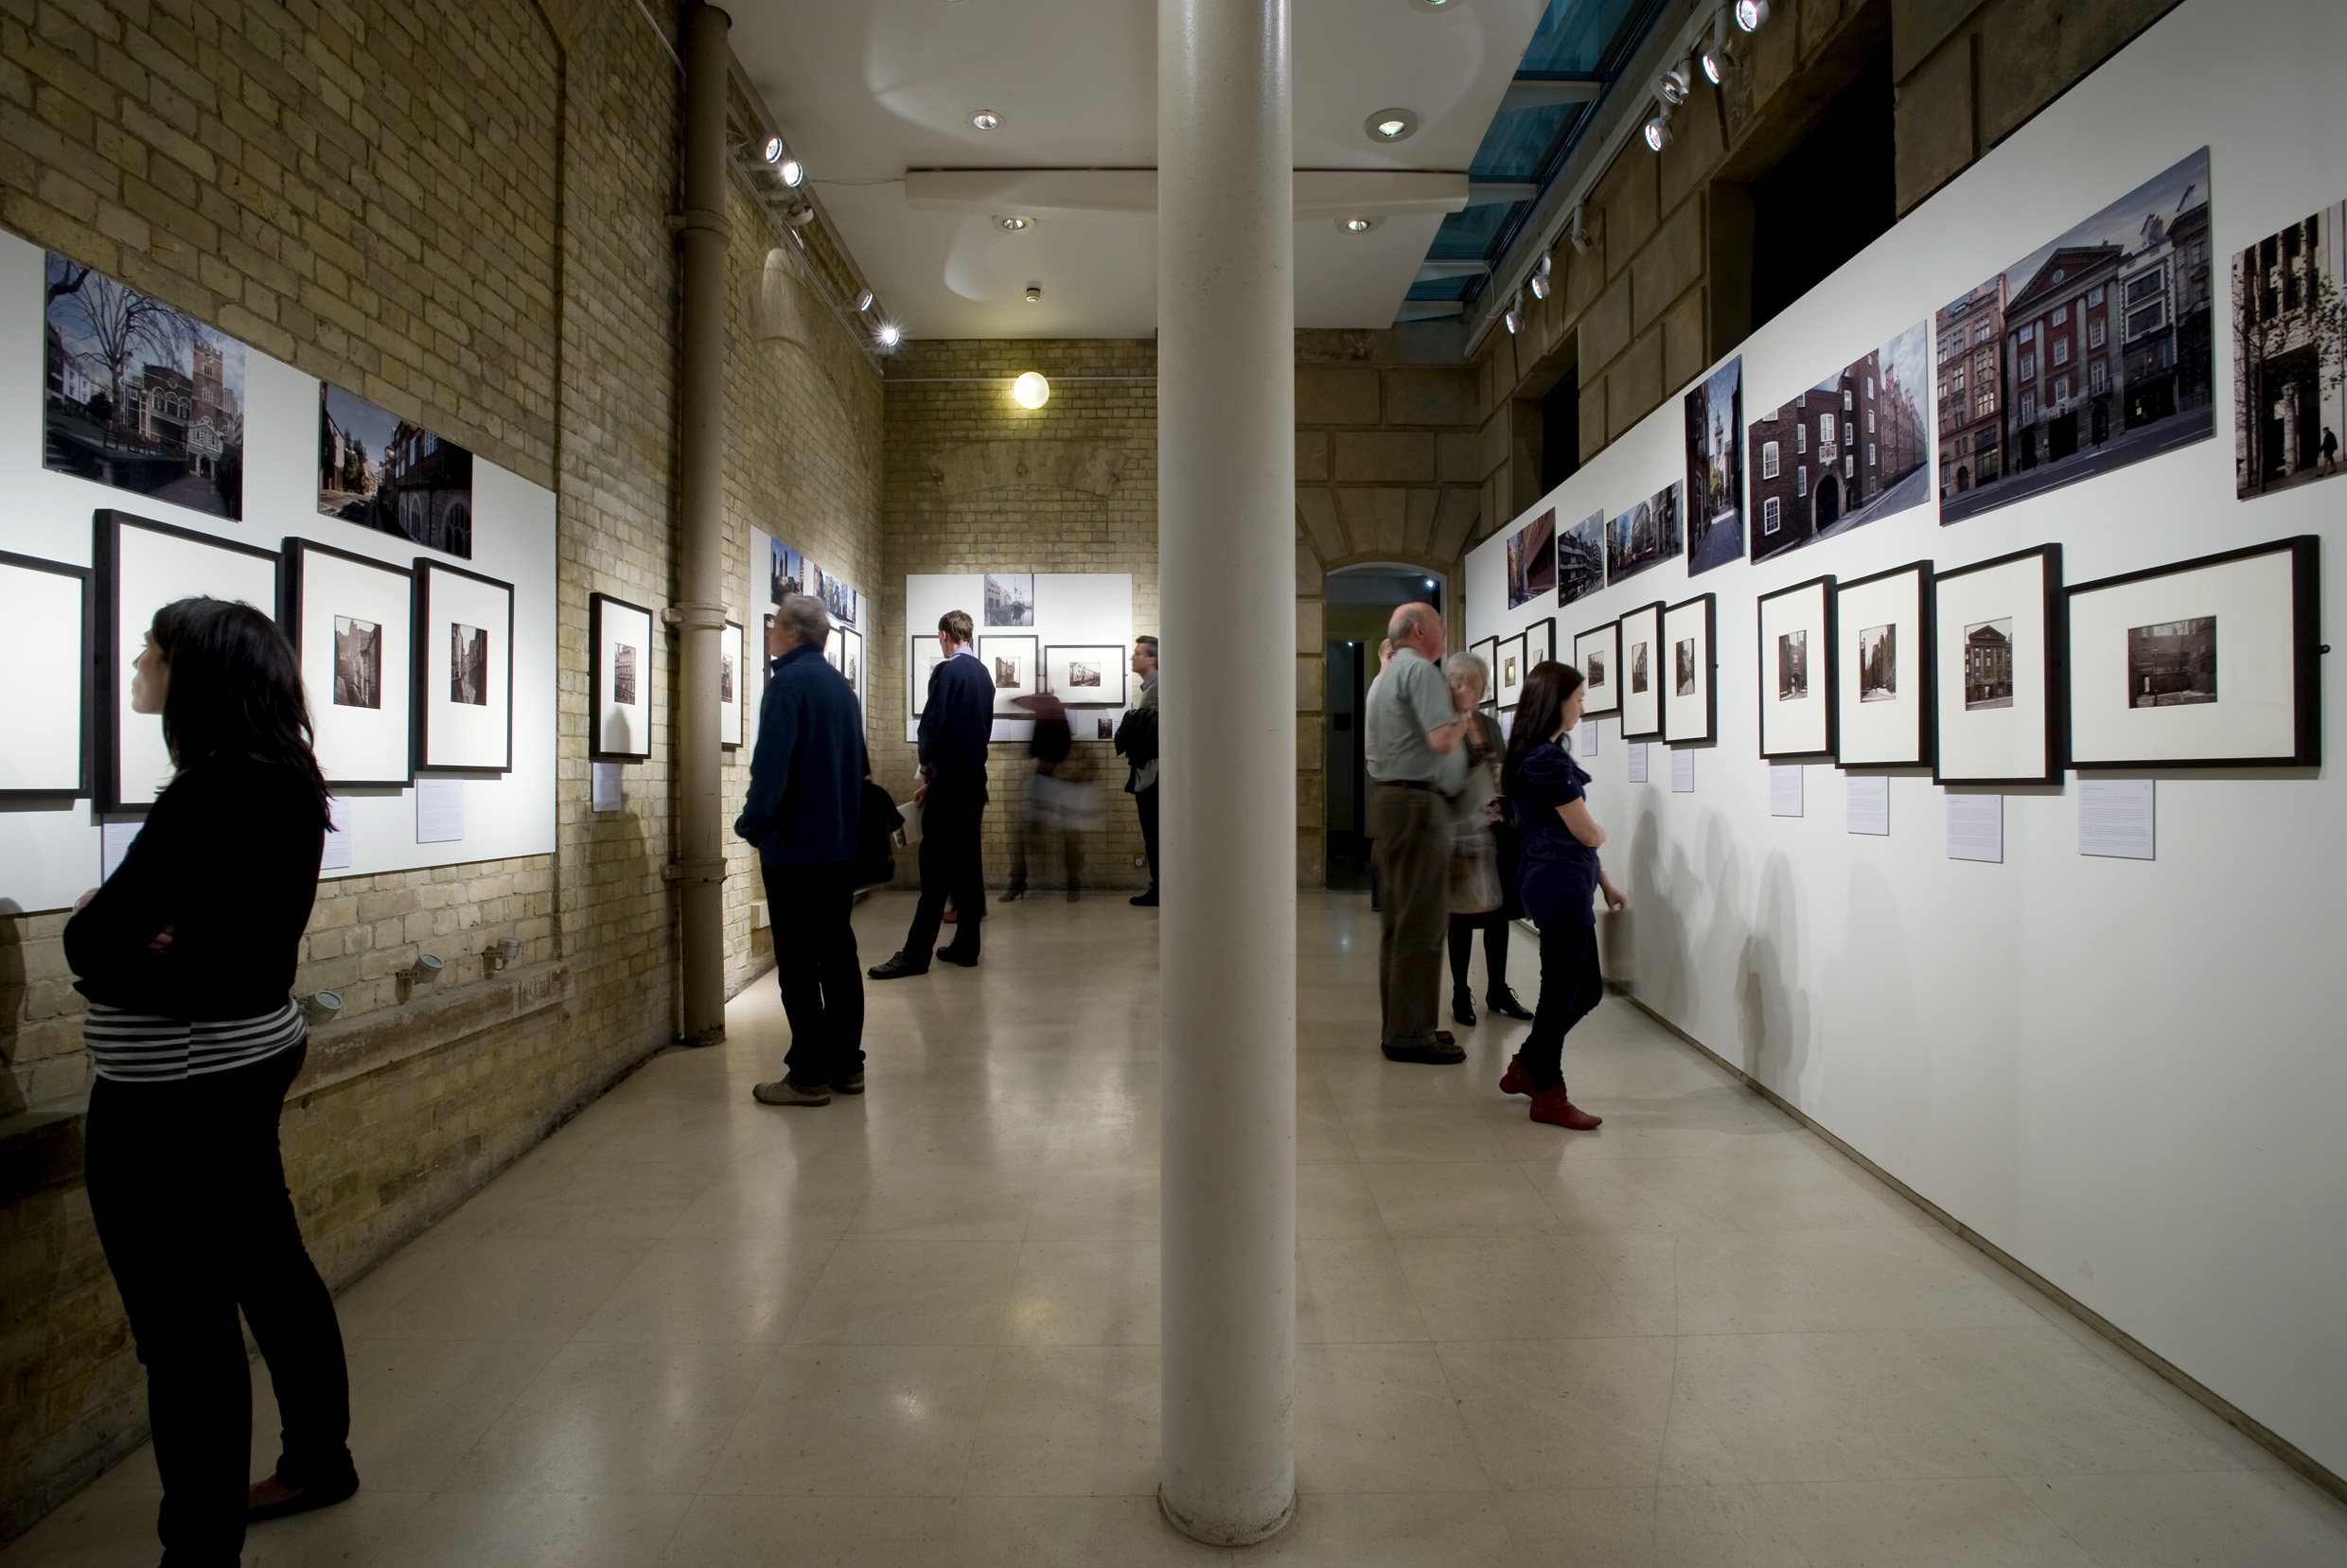 'Relics of Old London: Photography and the spirit of the city' was exhibited in the former Architecture Space at the Royal Academy in 2010.  Credit: Francis Ware / Royal Academy of Arts